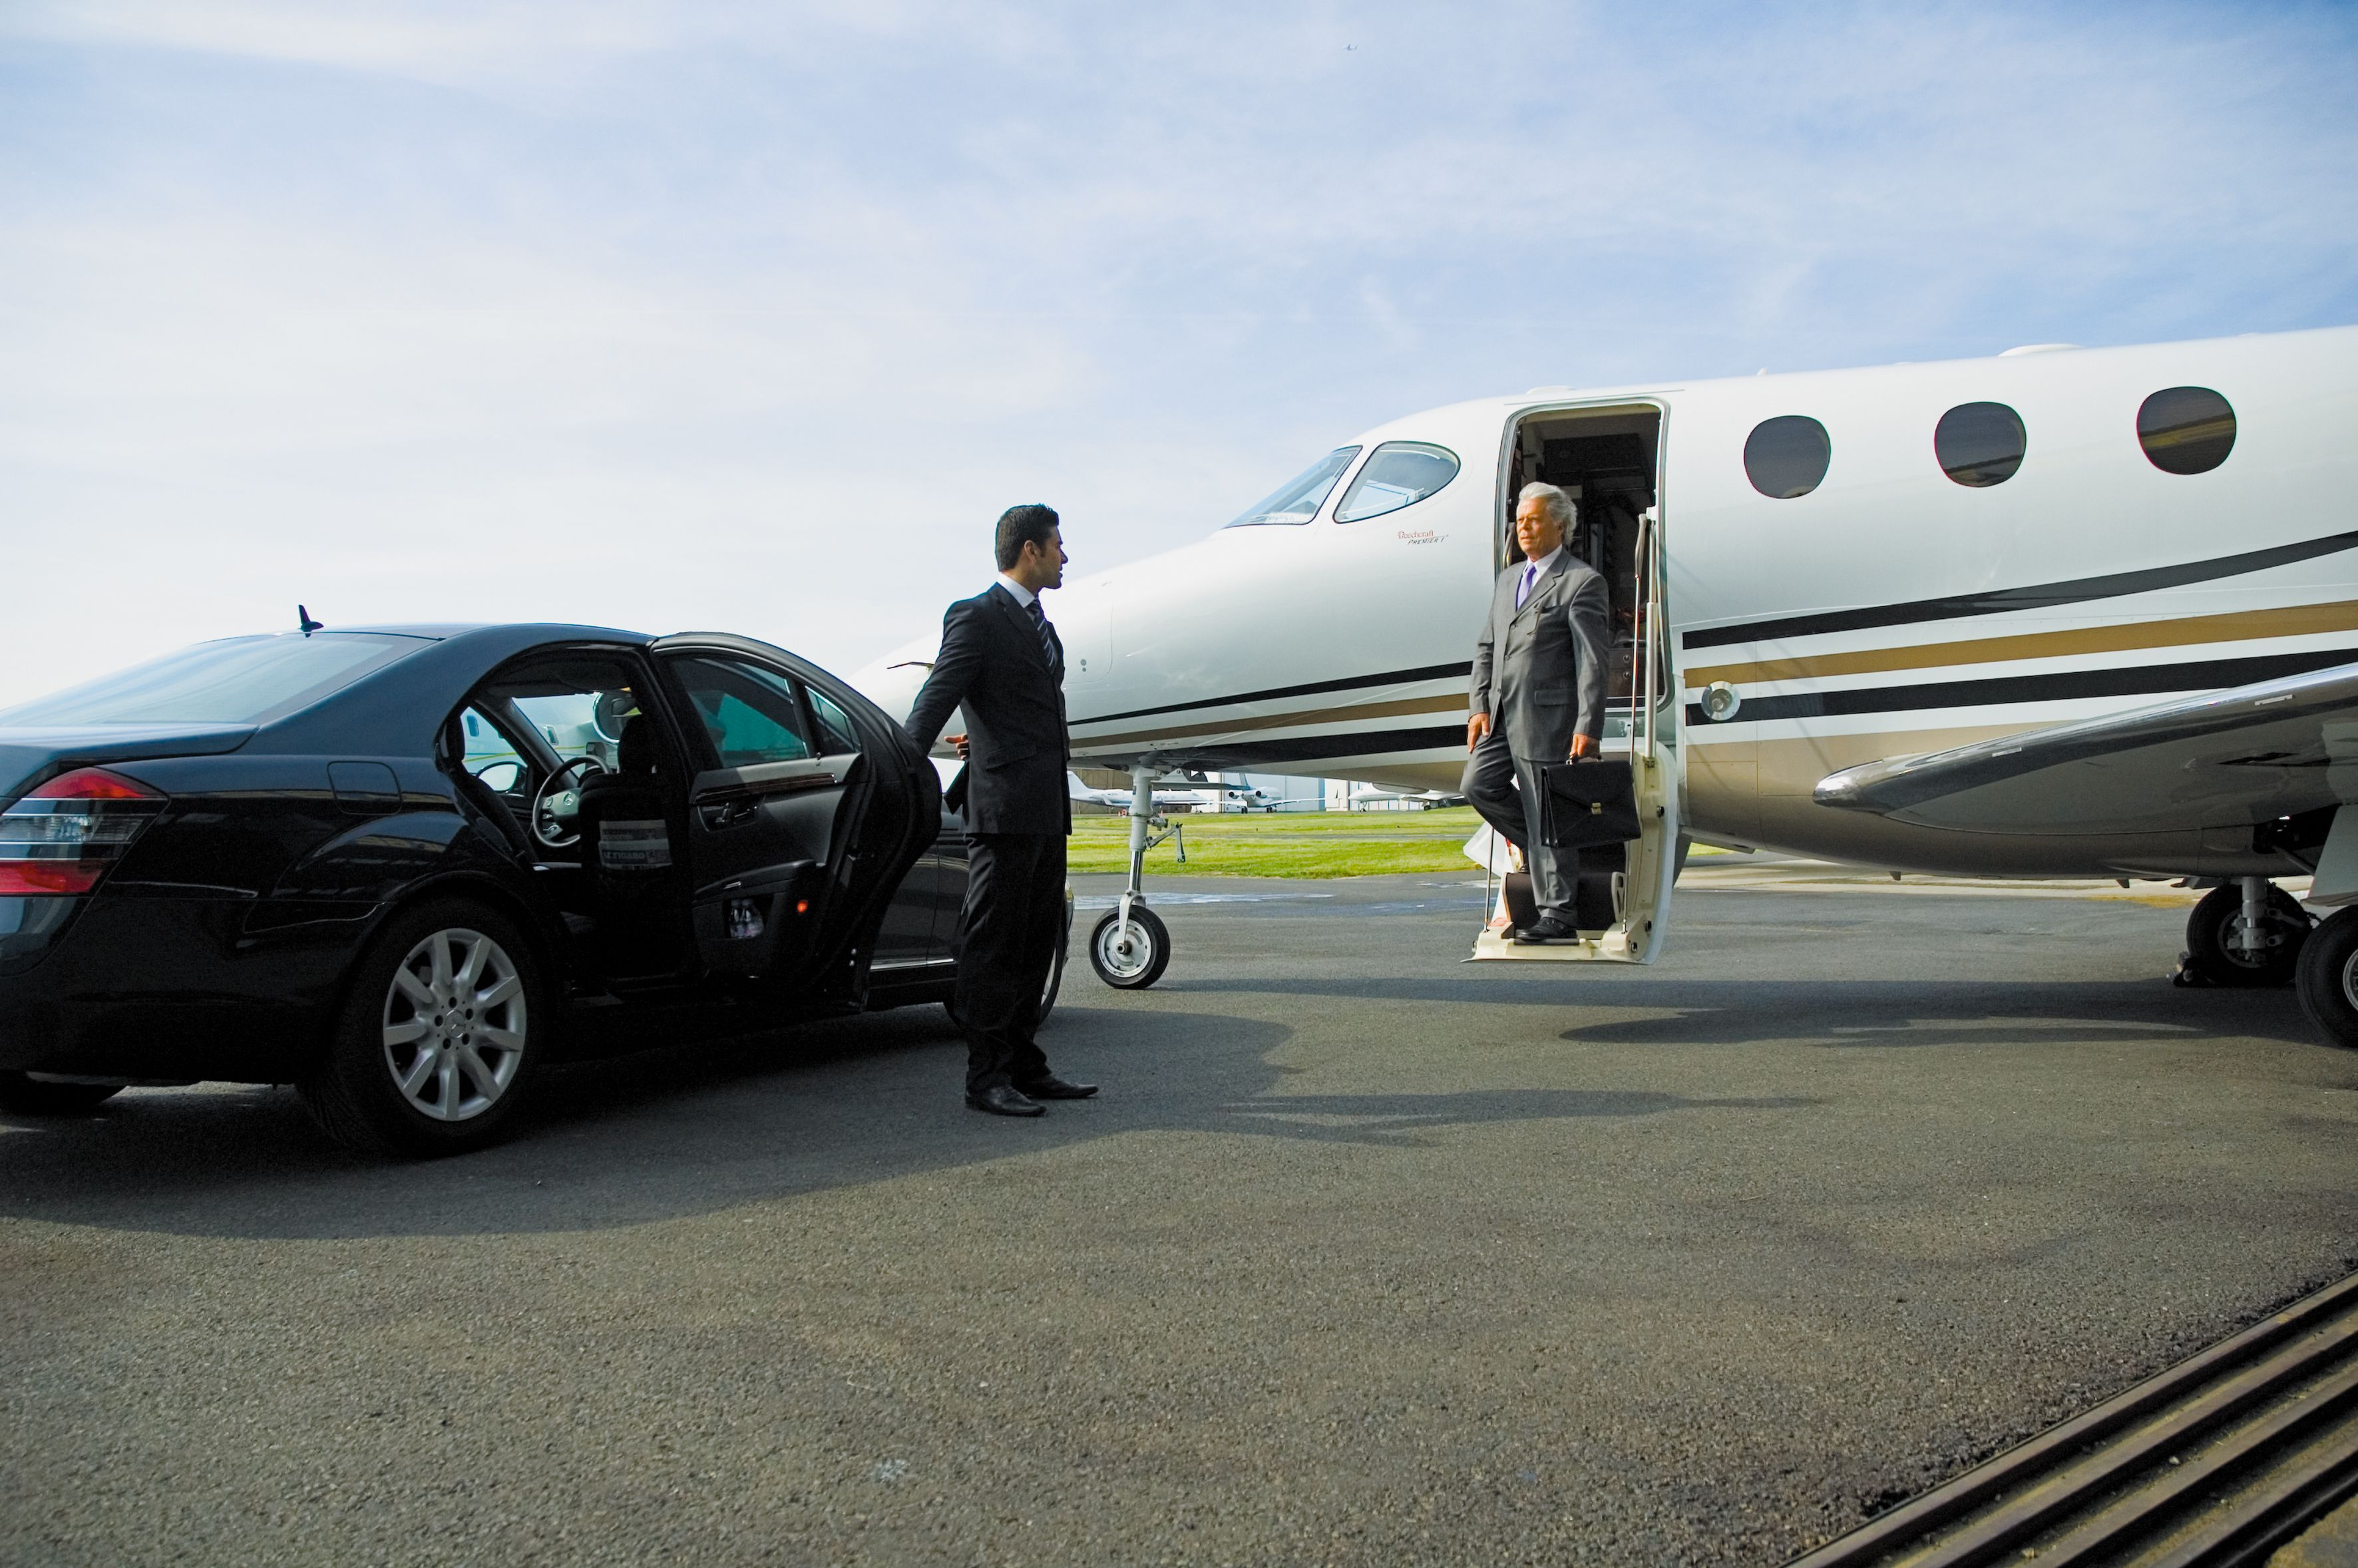 Are You Planning To Hire A Reliable Transportation Service To